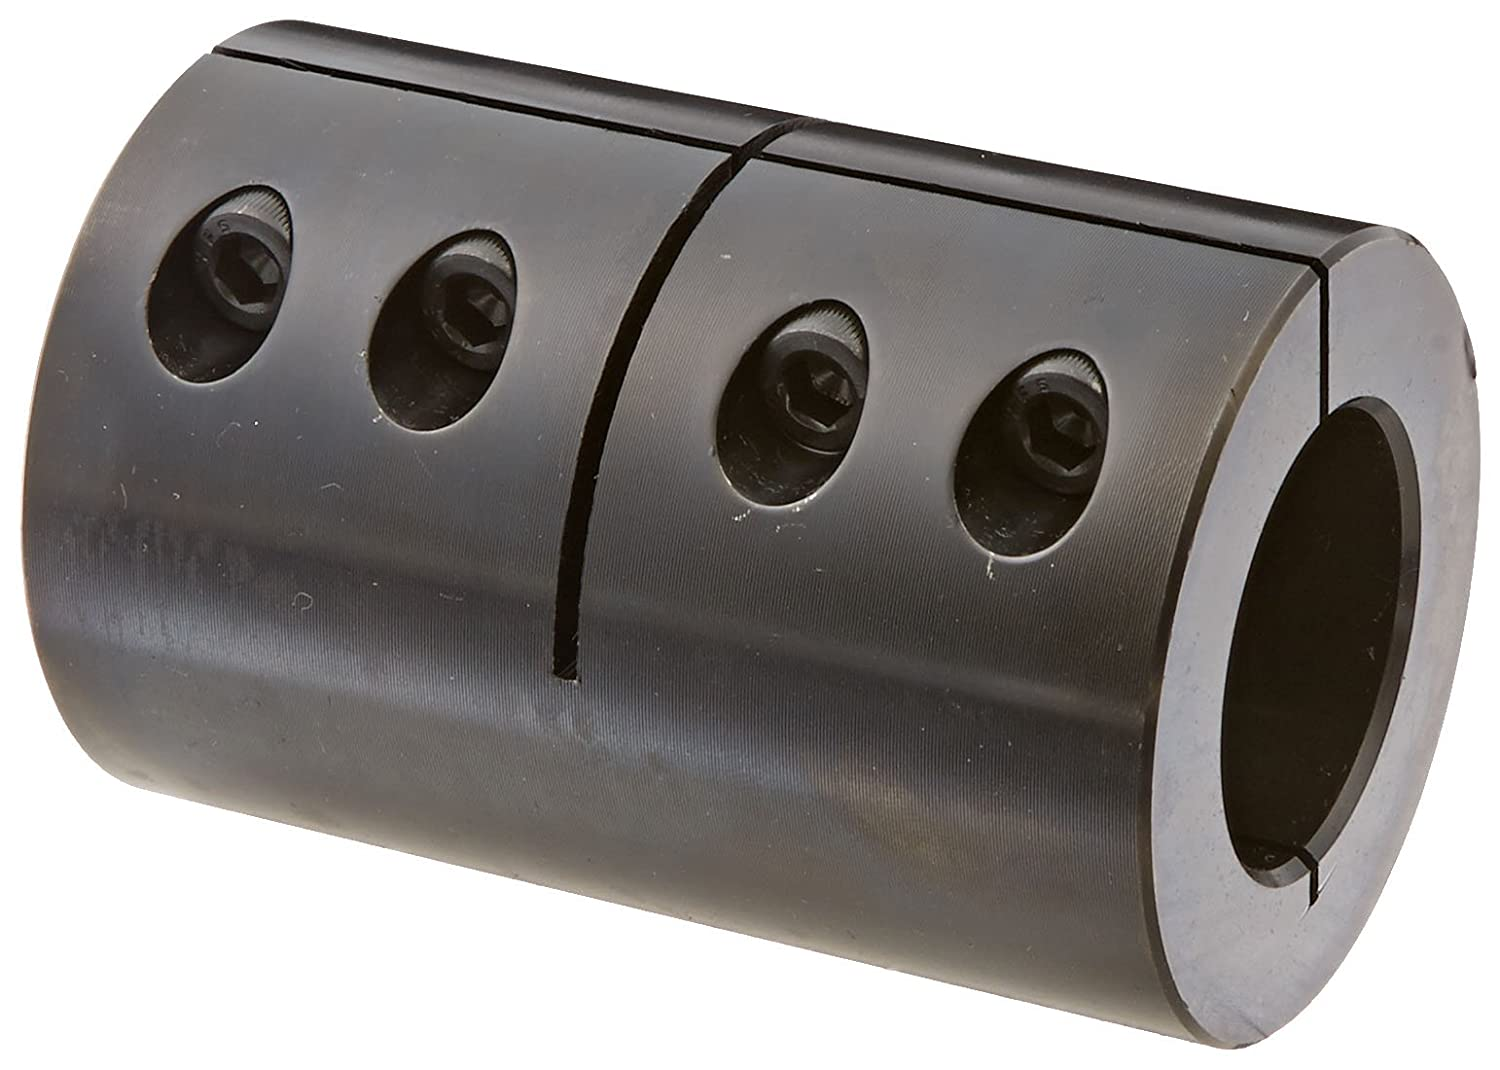 Black Oxide Plating Clamping Coupling 1 1//4 inch X 1 inch bore 2 1//8 inch OD 1//4-28 x 3//4 Set Screw Climax Part CC-125-100 Mild Steel 3 3//8 inch length